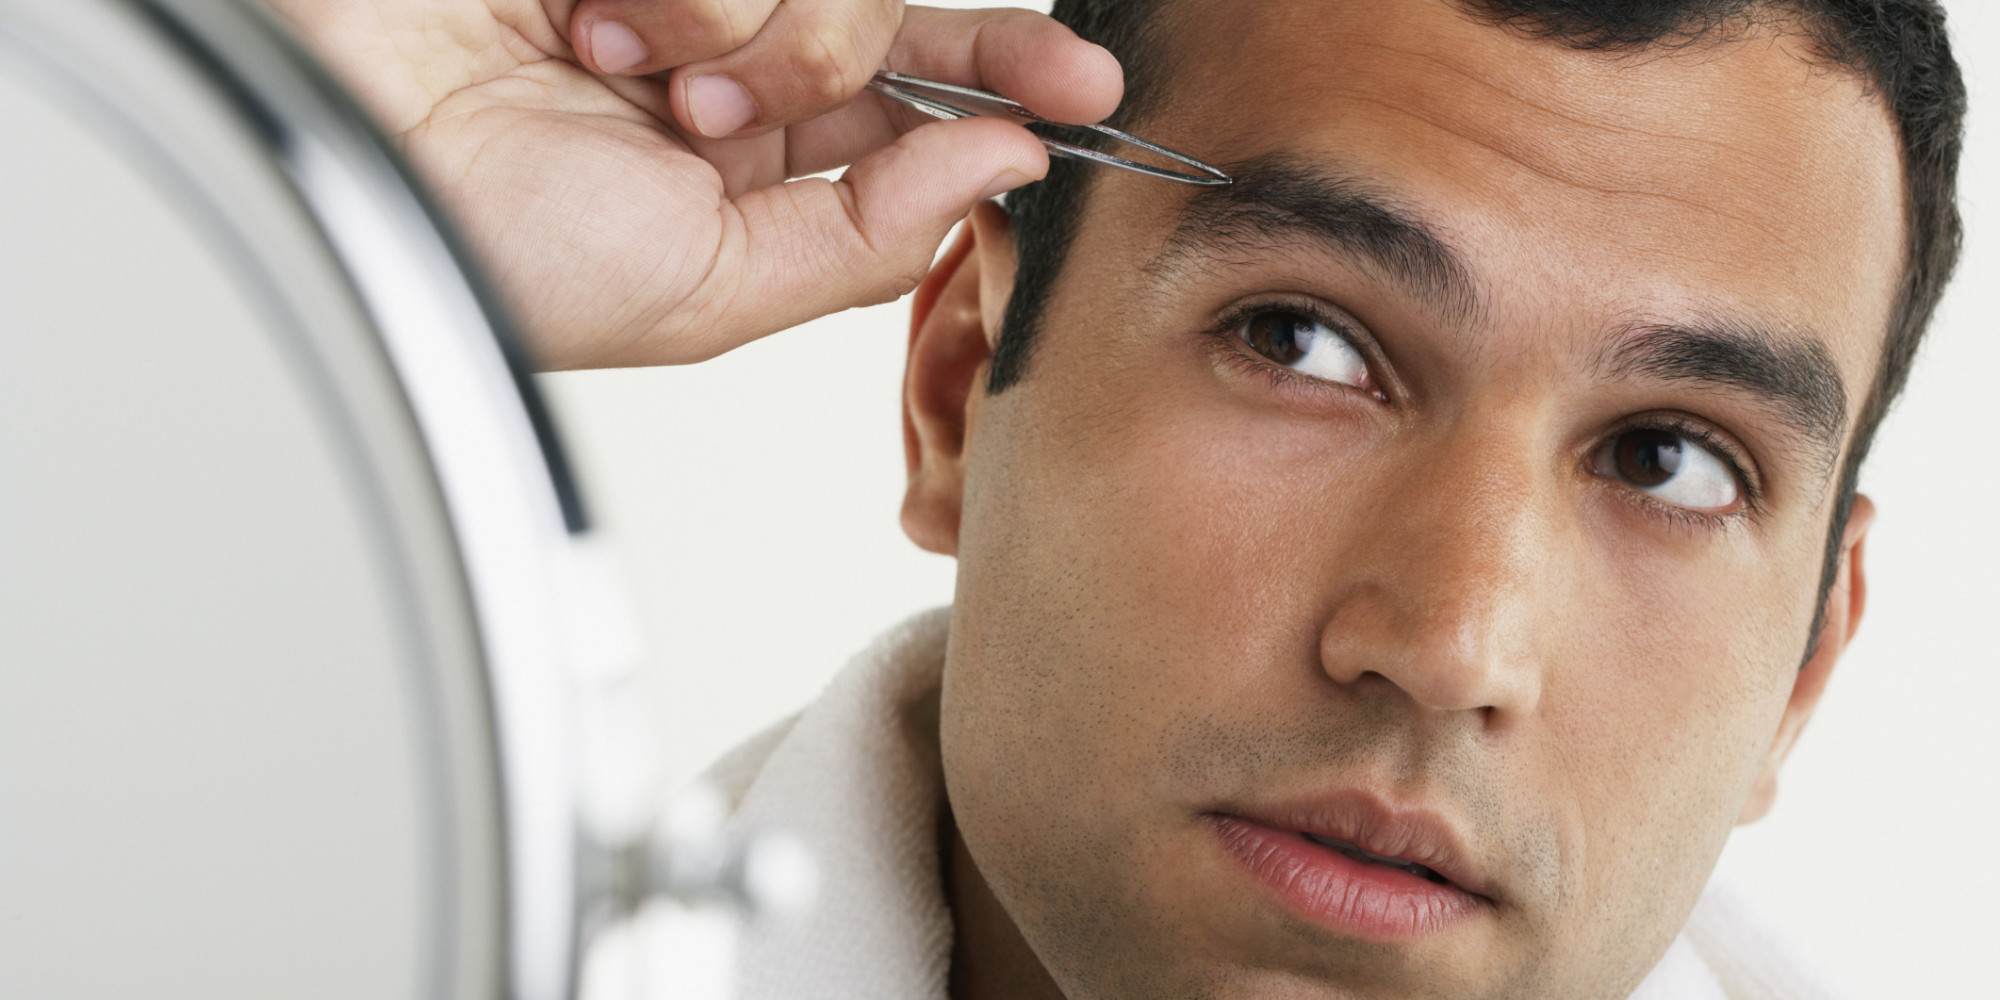 3 Crucial Tips Every Man Should Know About Grooming His ...